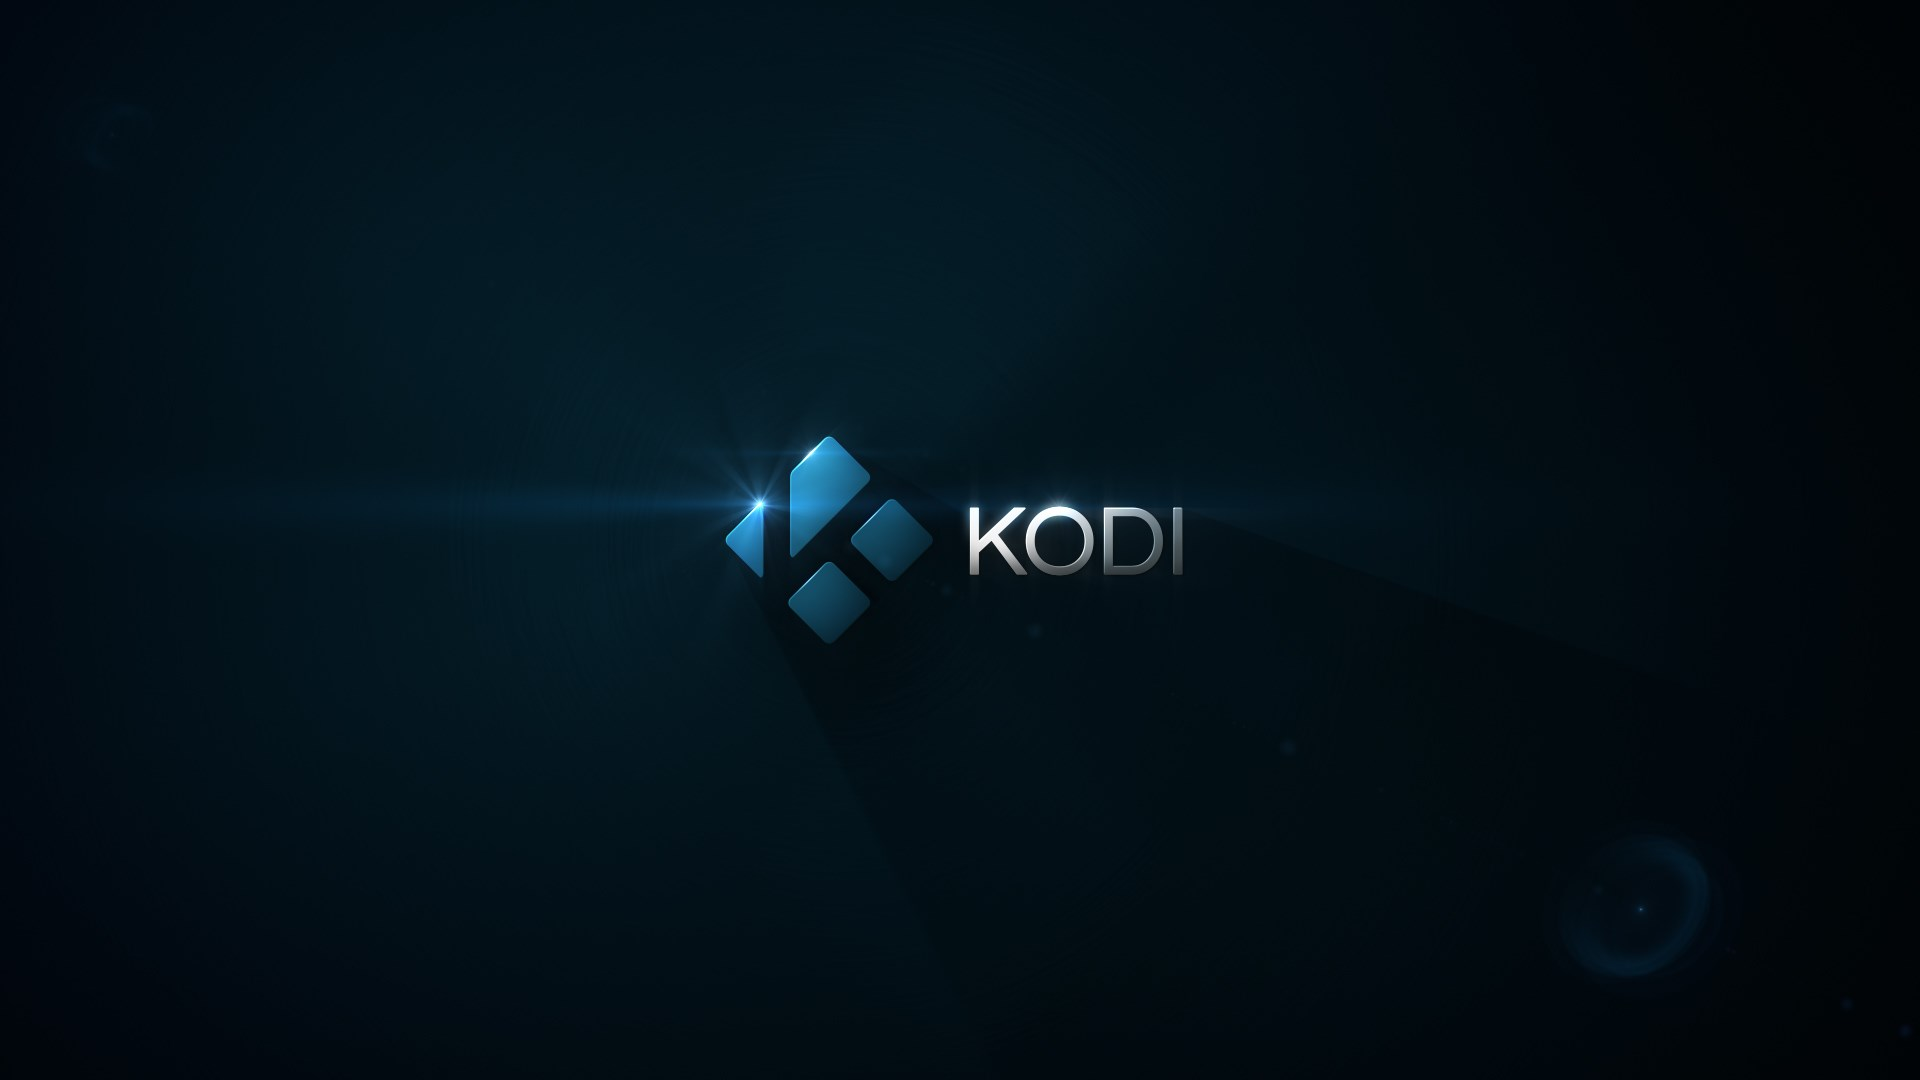 kodi full screen windows 10